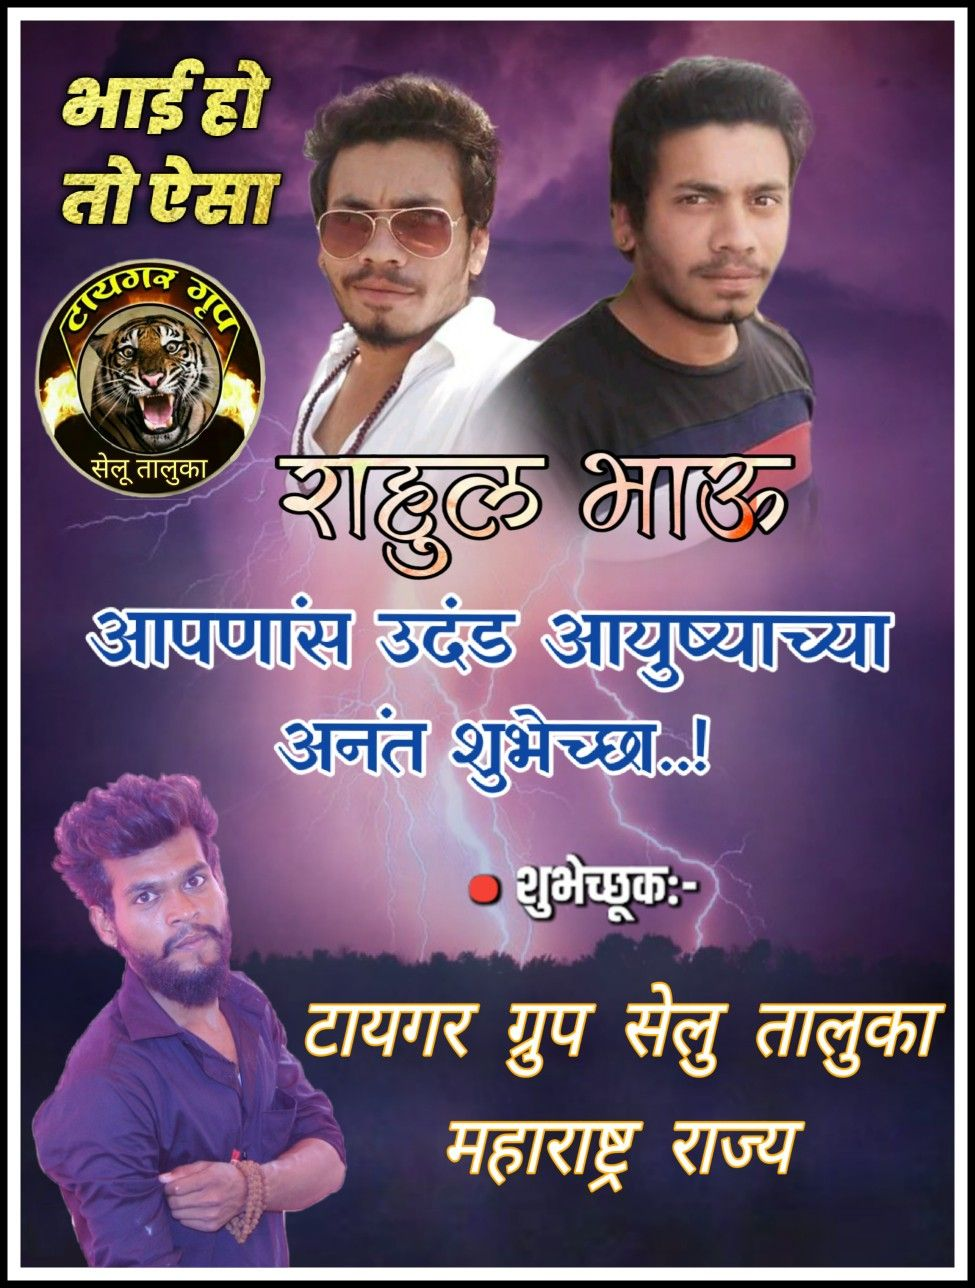 Pin By All Banner On Birthday Jayanti Banner All Posts Banner Poster Jayanti